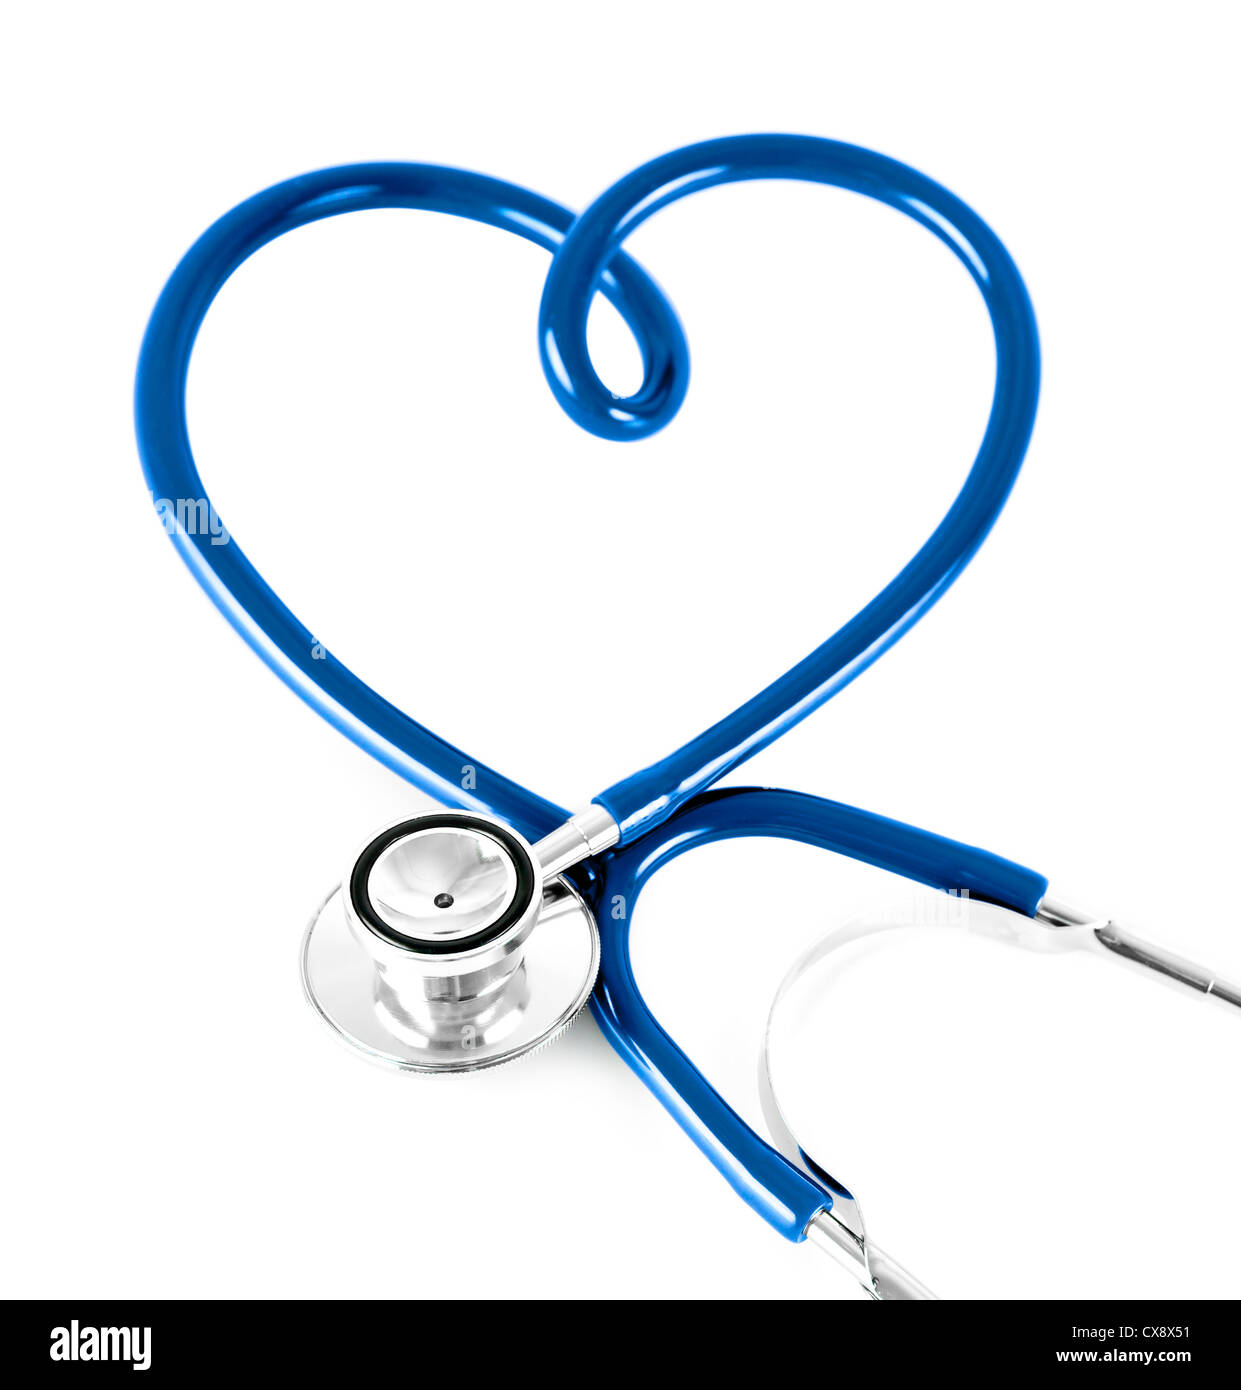 Stéthoscope en forme de coeur concept. couleur bleu. Photo Stock